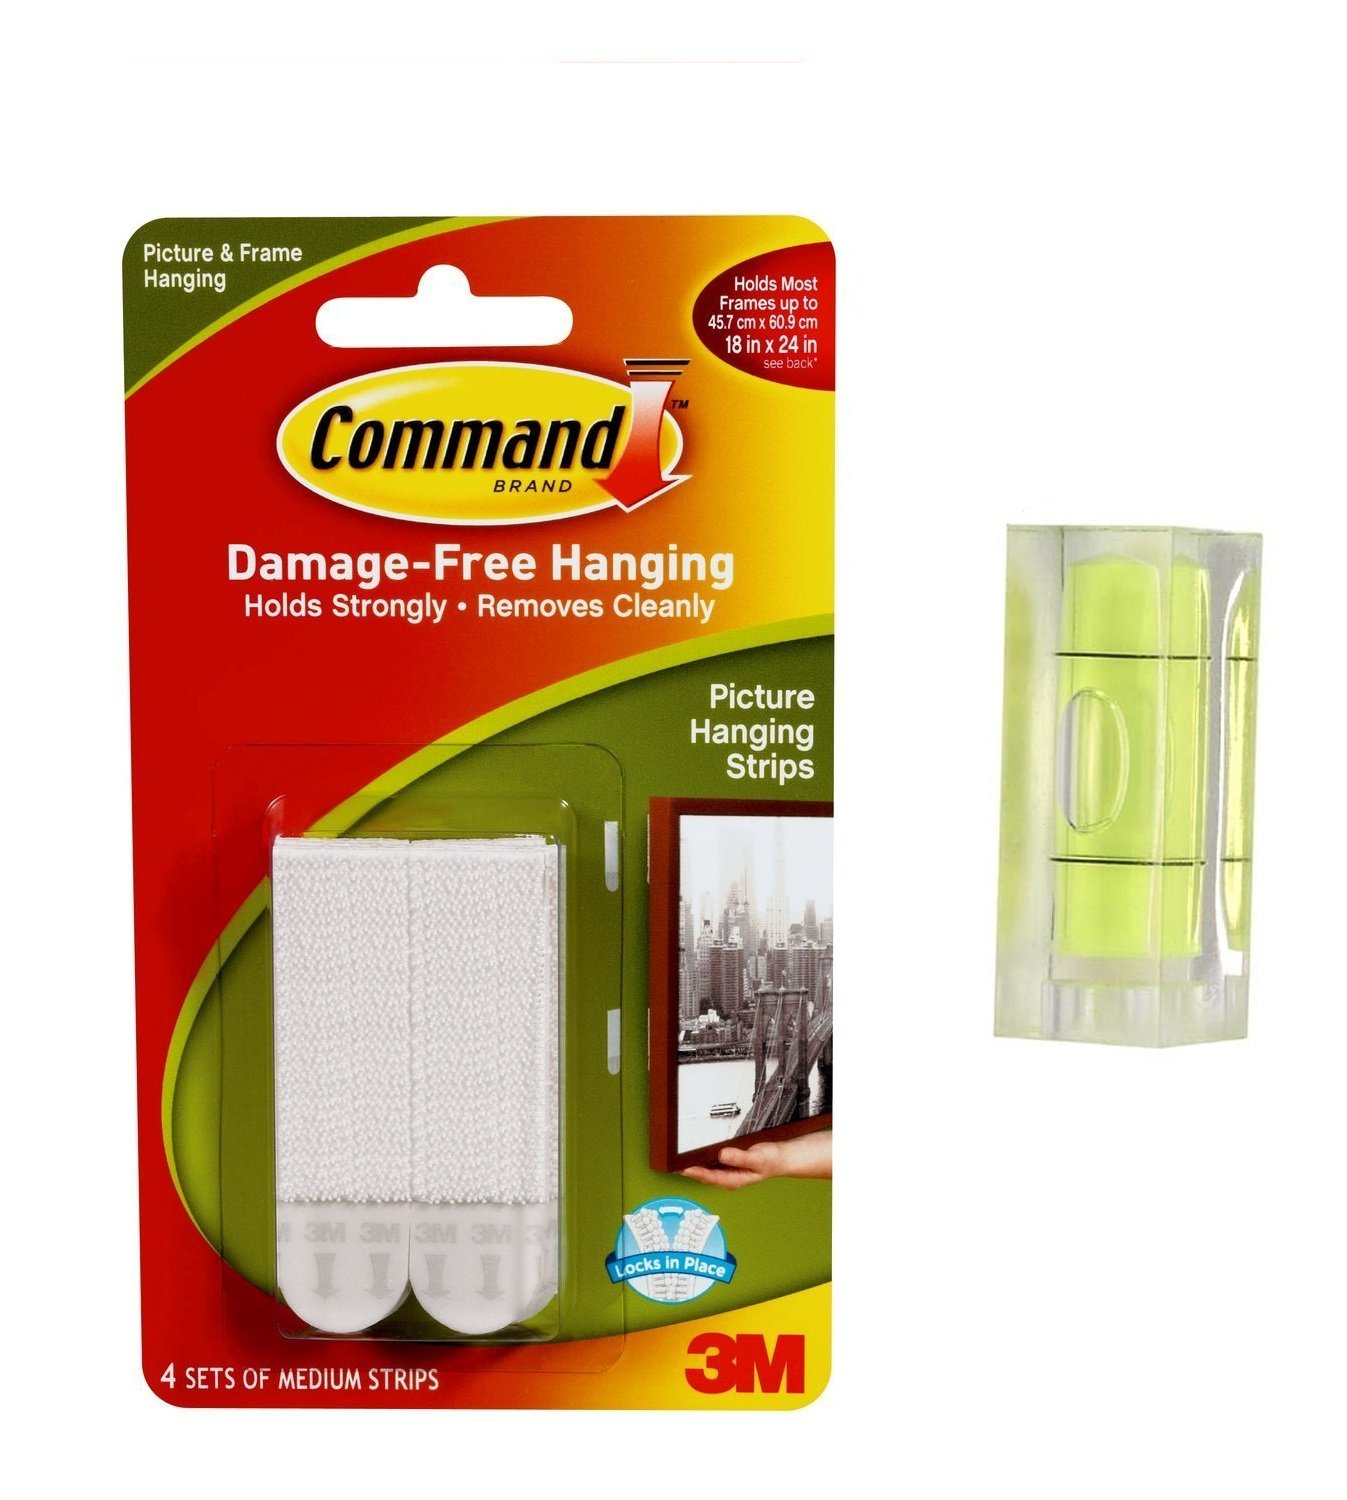 Command 17201-4pk Medium Picture Hanging Strips, 4 pairs (4x2) - White 3M